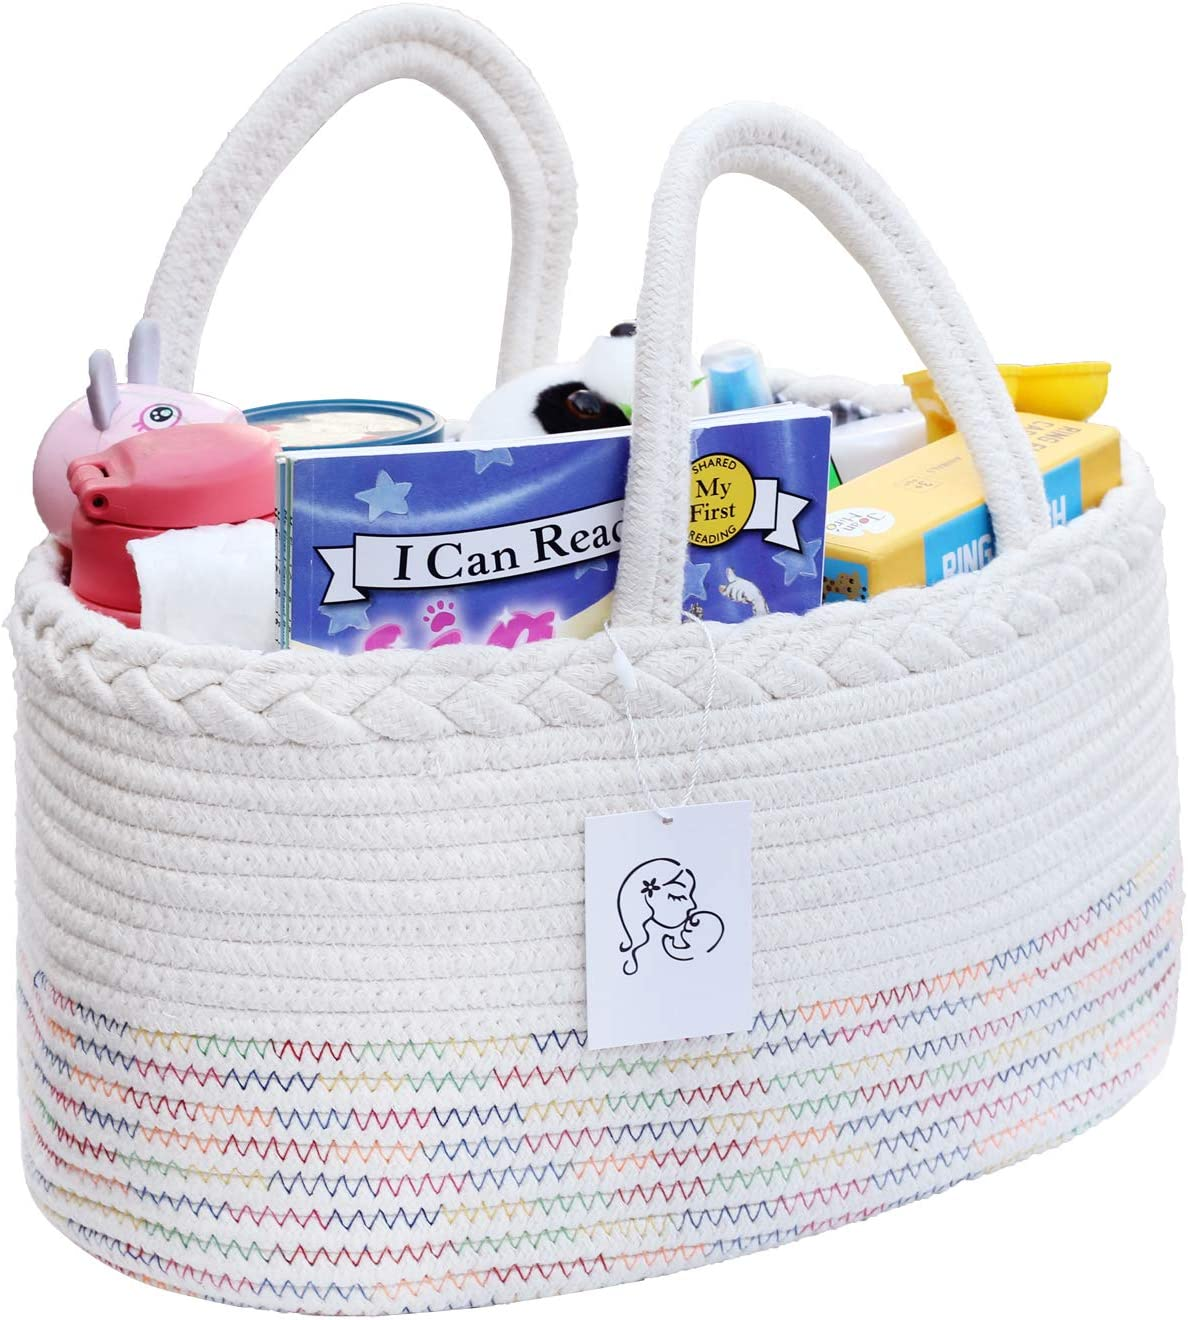 Baby Diaper Caddy Organizer, Nursery Storage bin for Toy Diaper Holder Bag for Changing Table Car Newborn Shower Gift Basket for Boys Girls Portable Cotton (Multicolored)